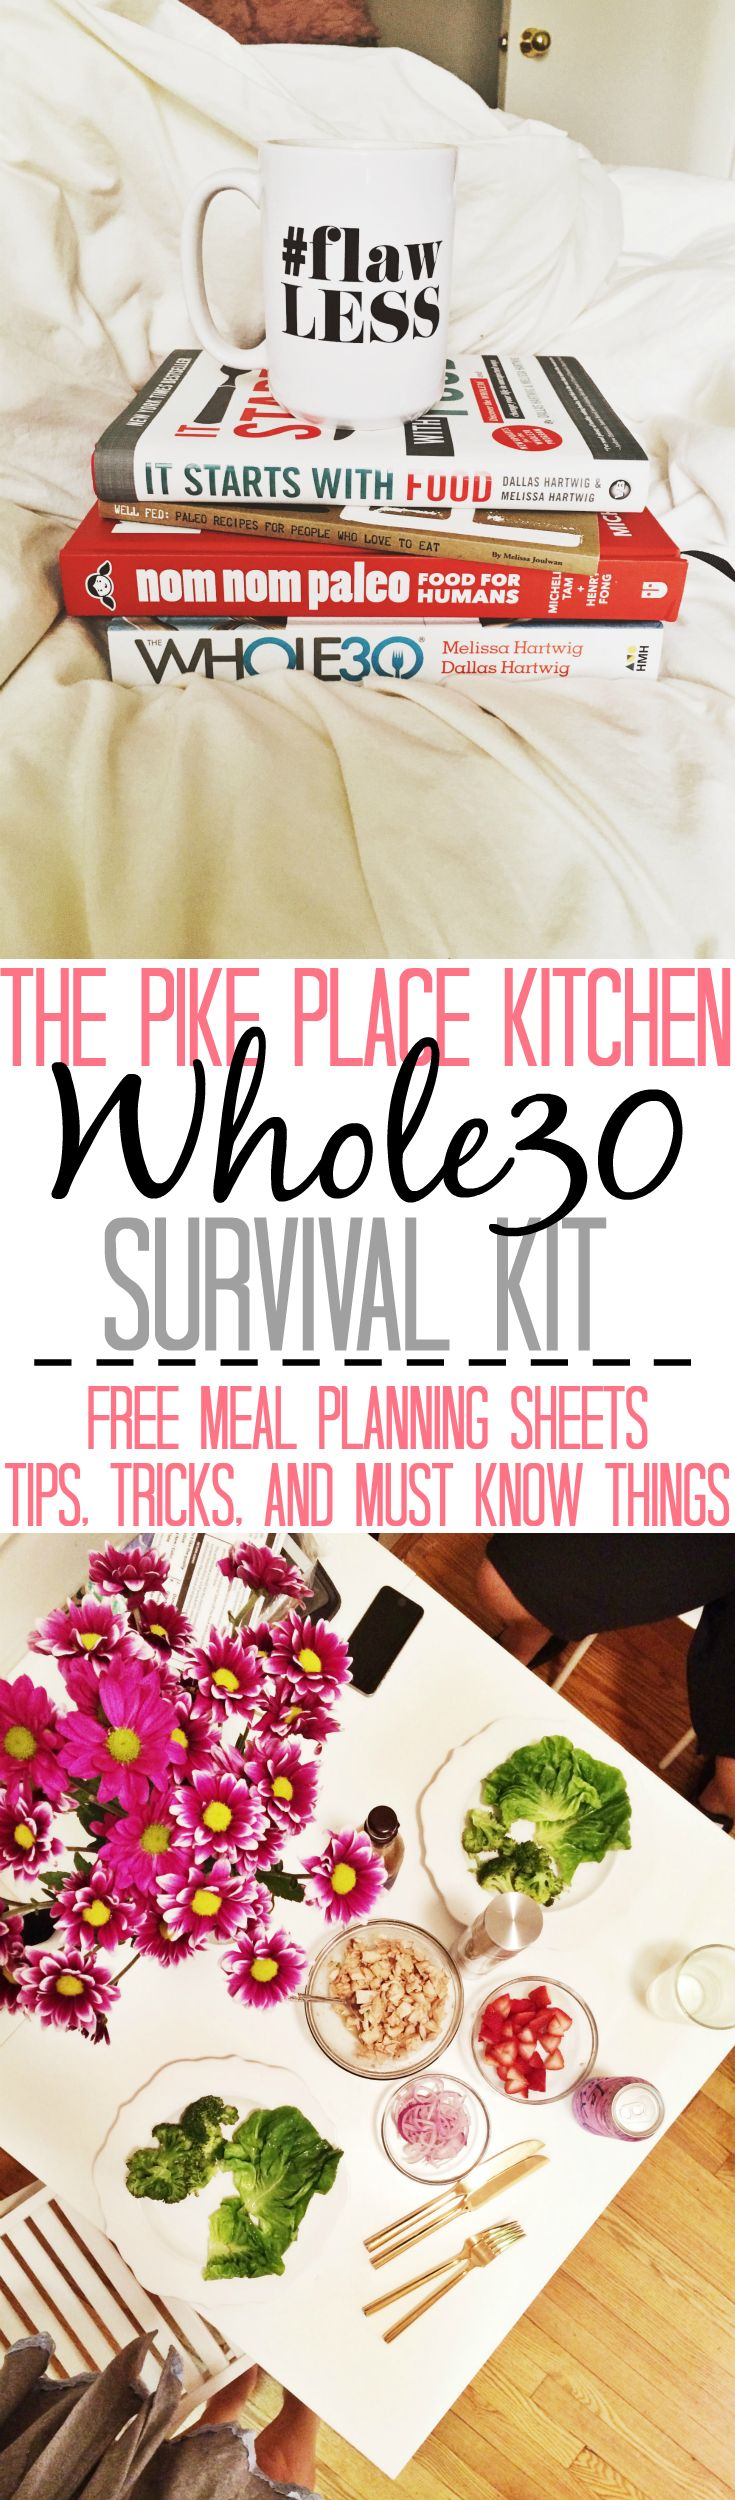 "A ""survival kit"" of all the tips/tricks/things I wish I knew before/at the beginning of my whole30. Including the meal planning & grocery list templates I used and a list of emergency ""omg i need food HALLP!"" meals I relied on."